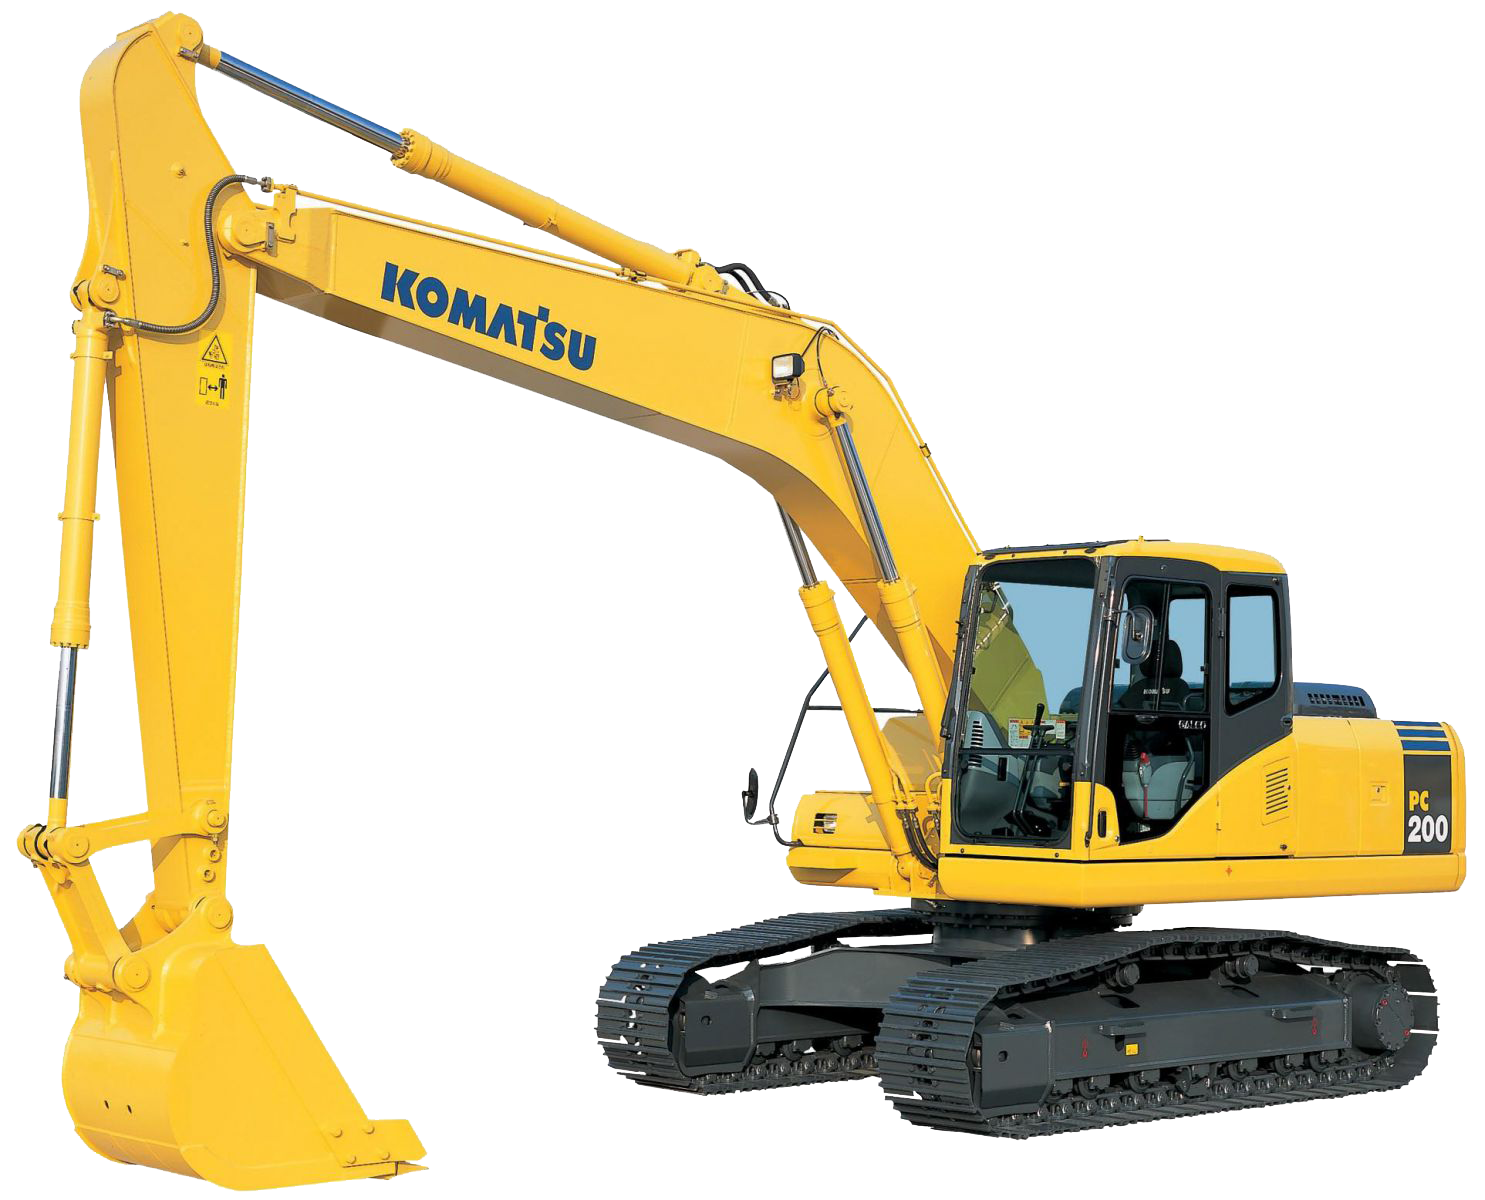 png freeuse stock Excavator Icon Clipart